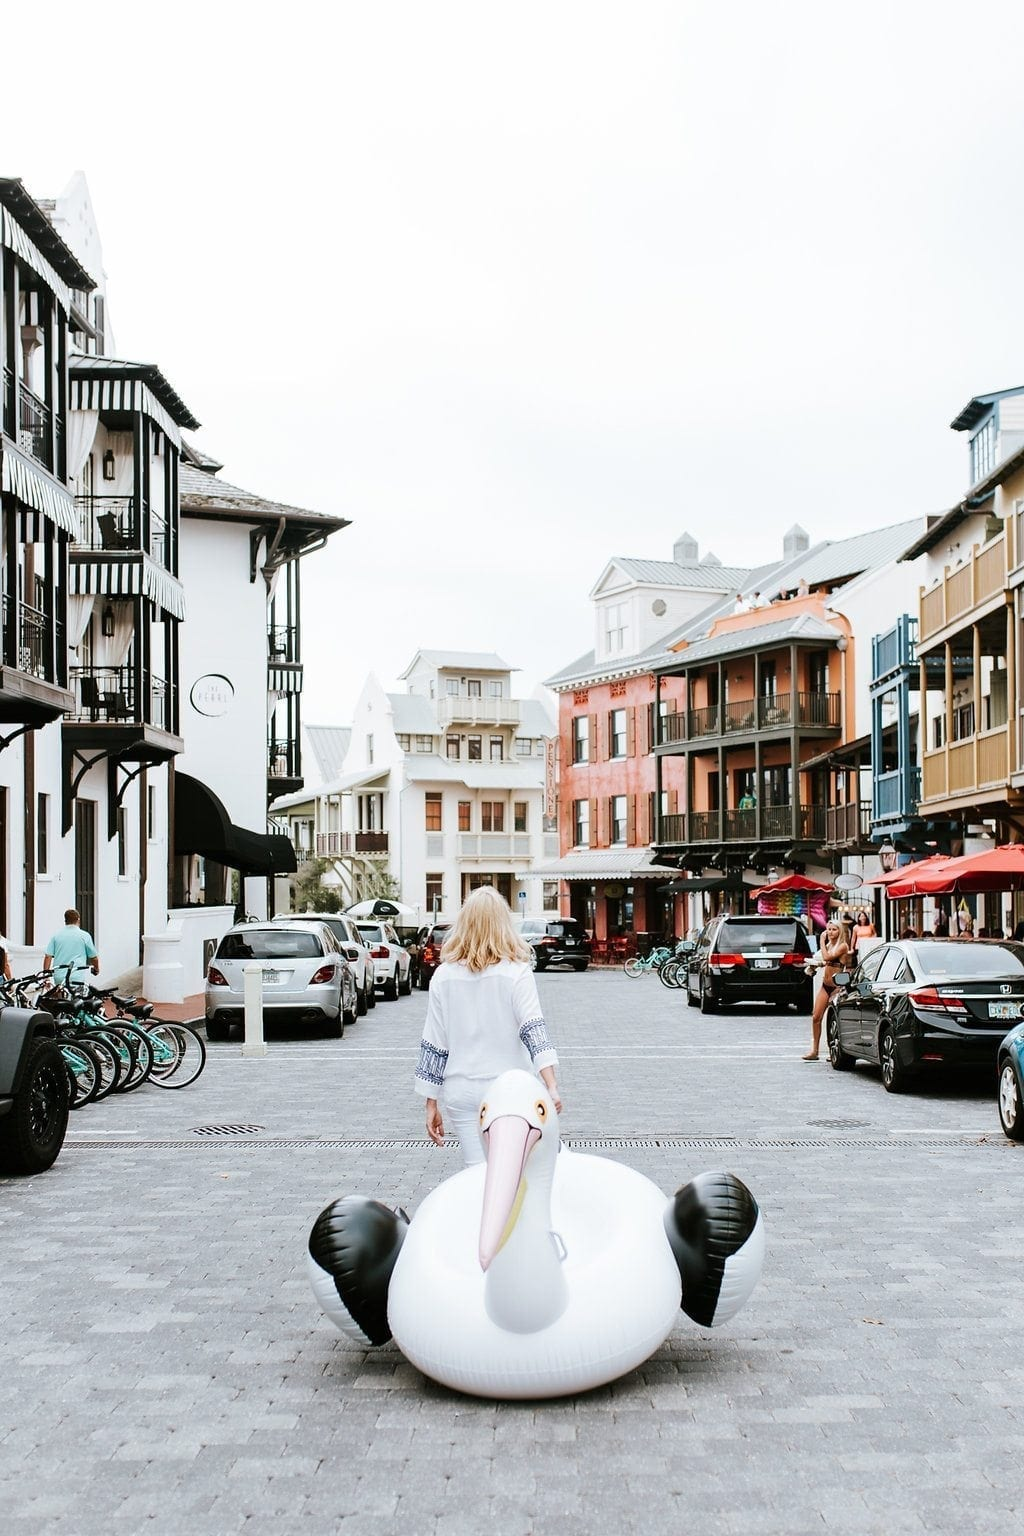 Rosemary Beach shops and dining recommendations.